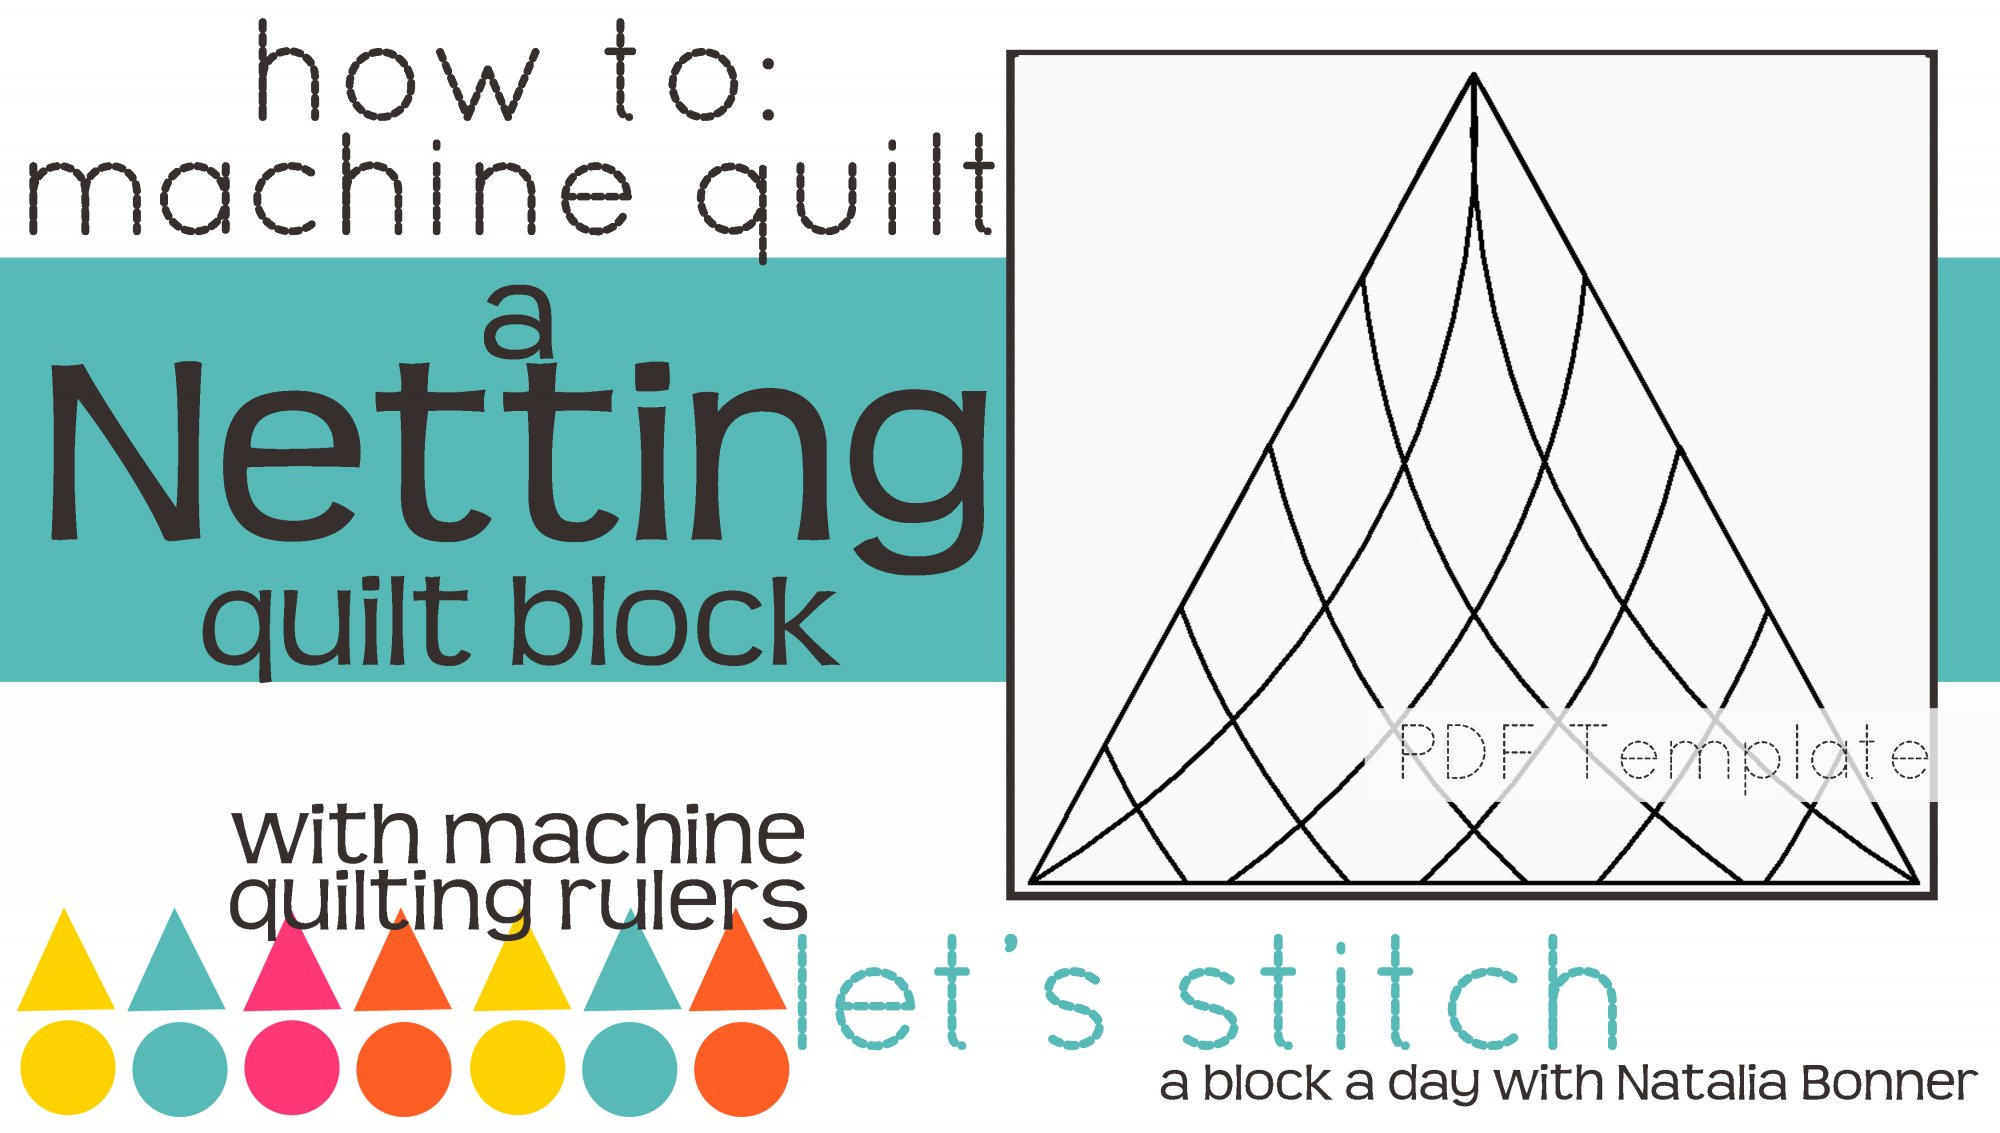 Let's Stitch - A Block a Day With Natalia Bonner - PDF - Netting